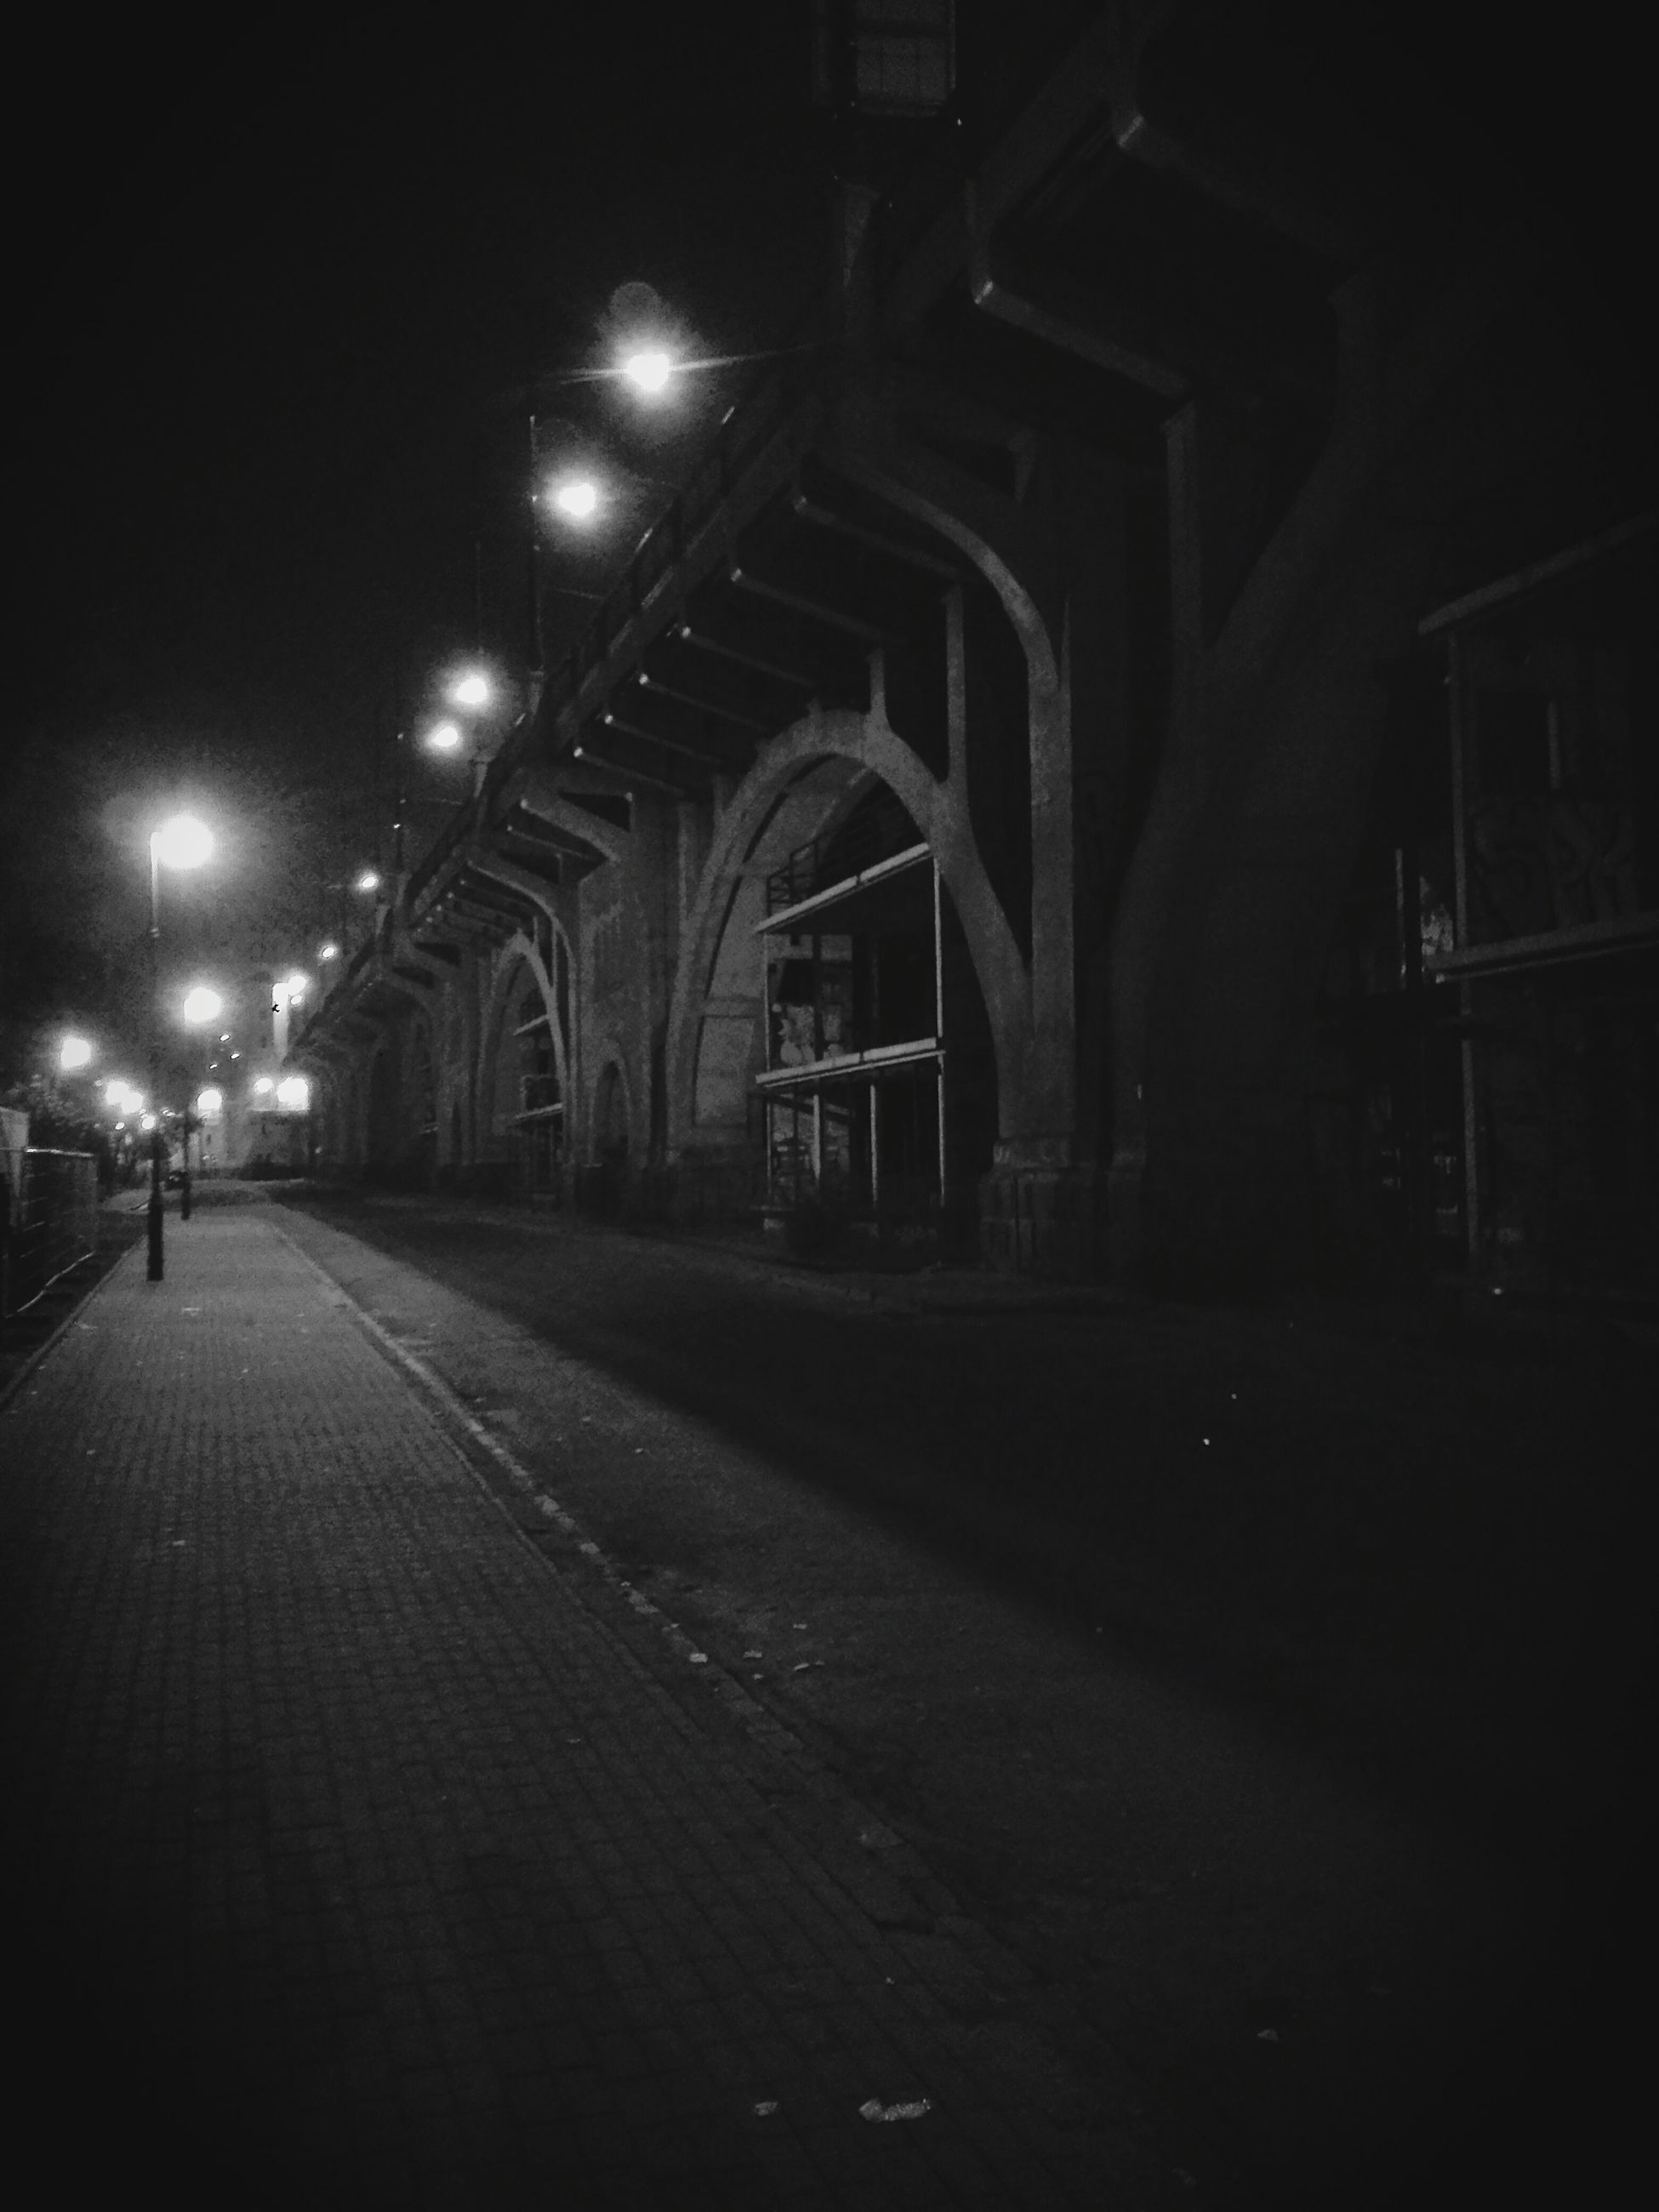 architecture, built structure, illuminated, night, the way forward, arch, building exterior, diminishing perspective, empty, architectural column, history, vanishing point, travel destinations, lighting equipment, long, walkway, indoors, street, incidental people, no people